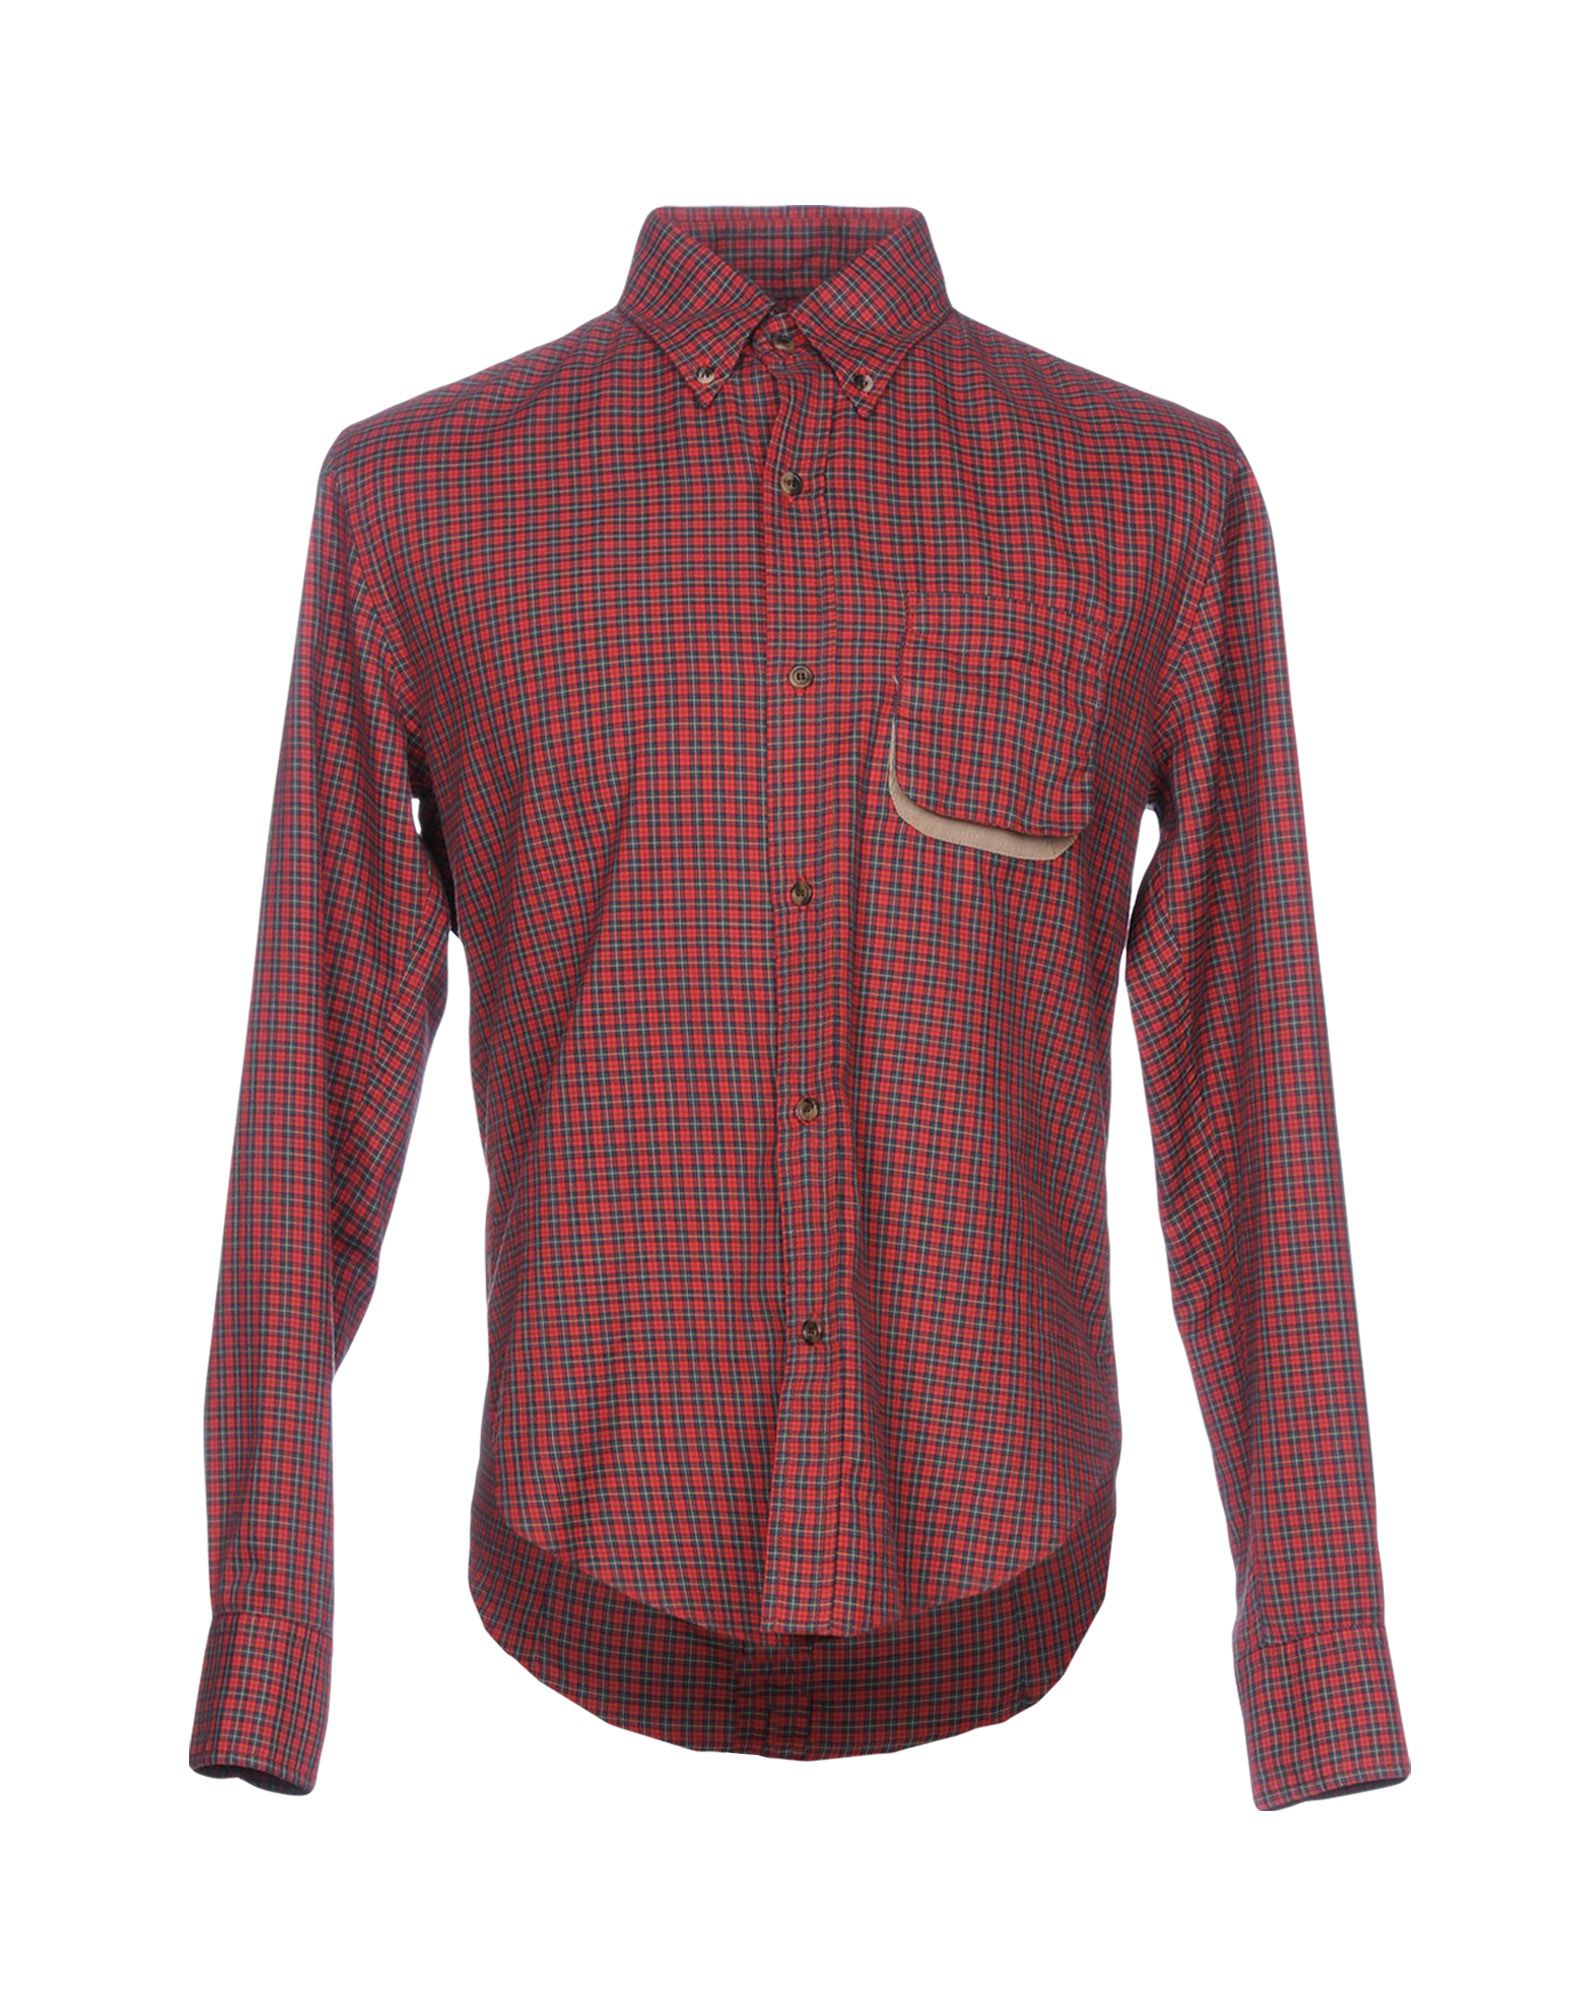 Camicia A Quadri Band Of Outsiders Uomo - Acquista online su